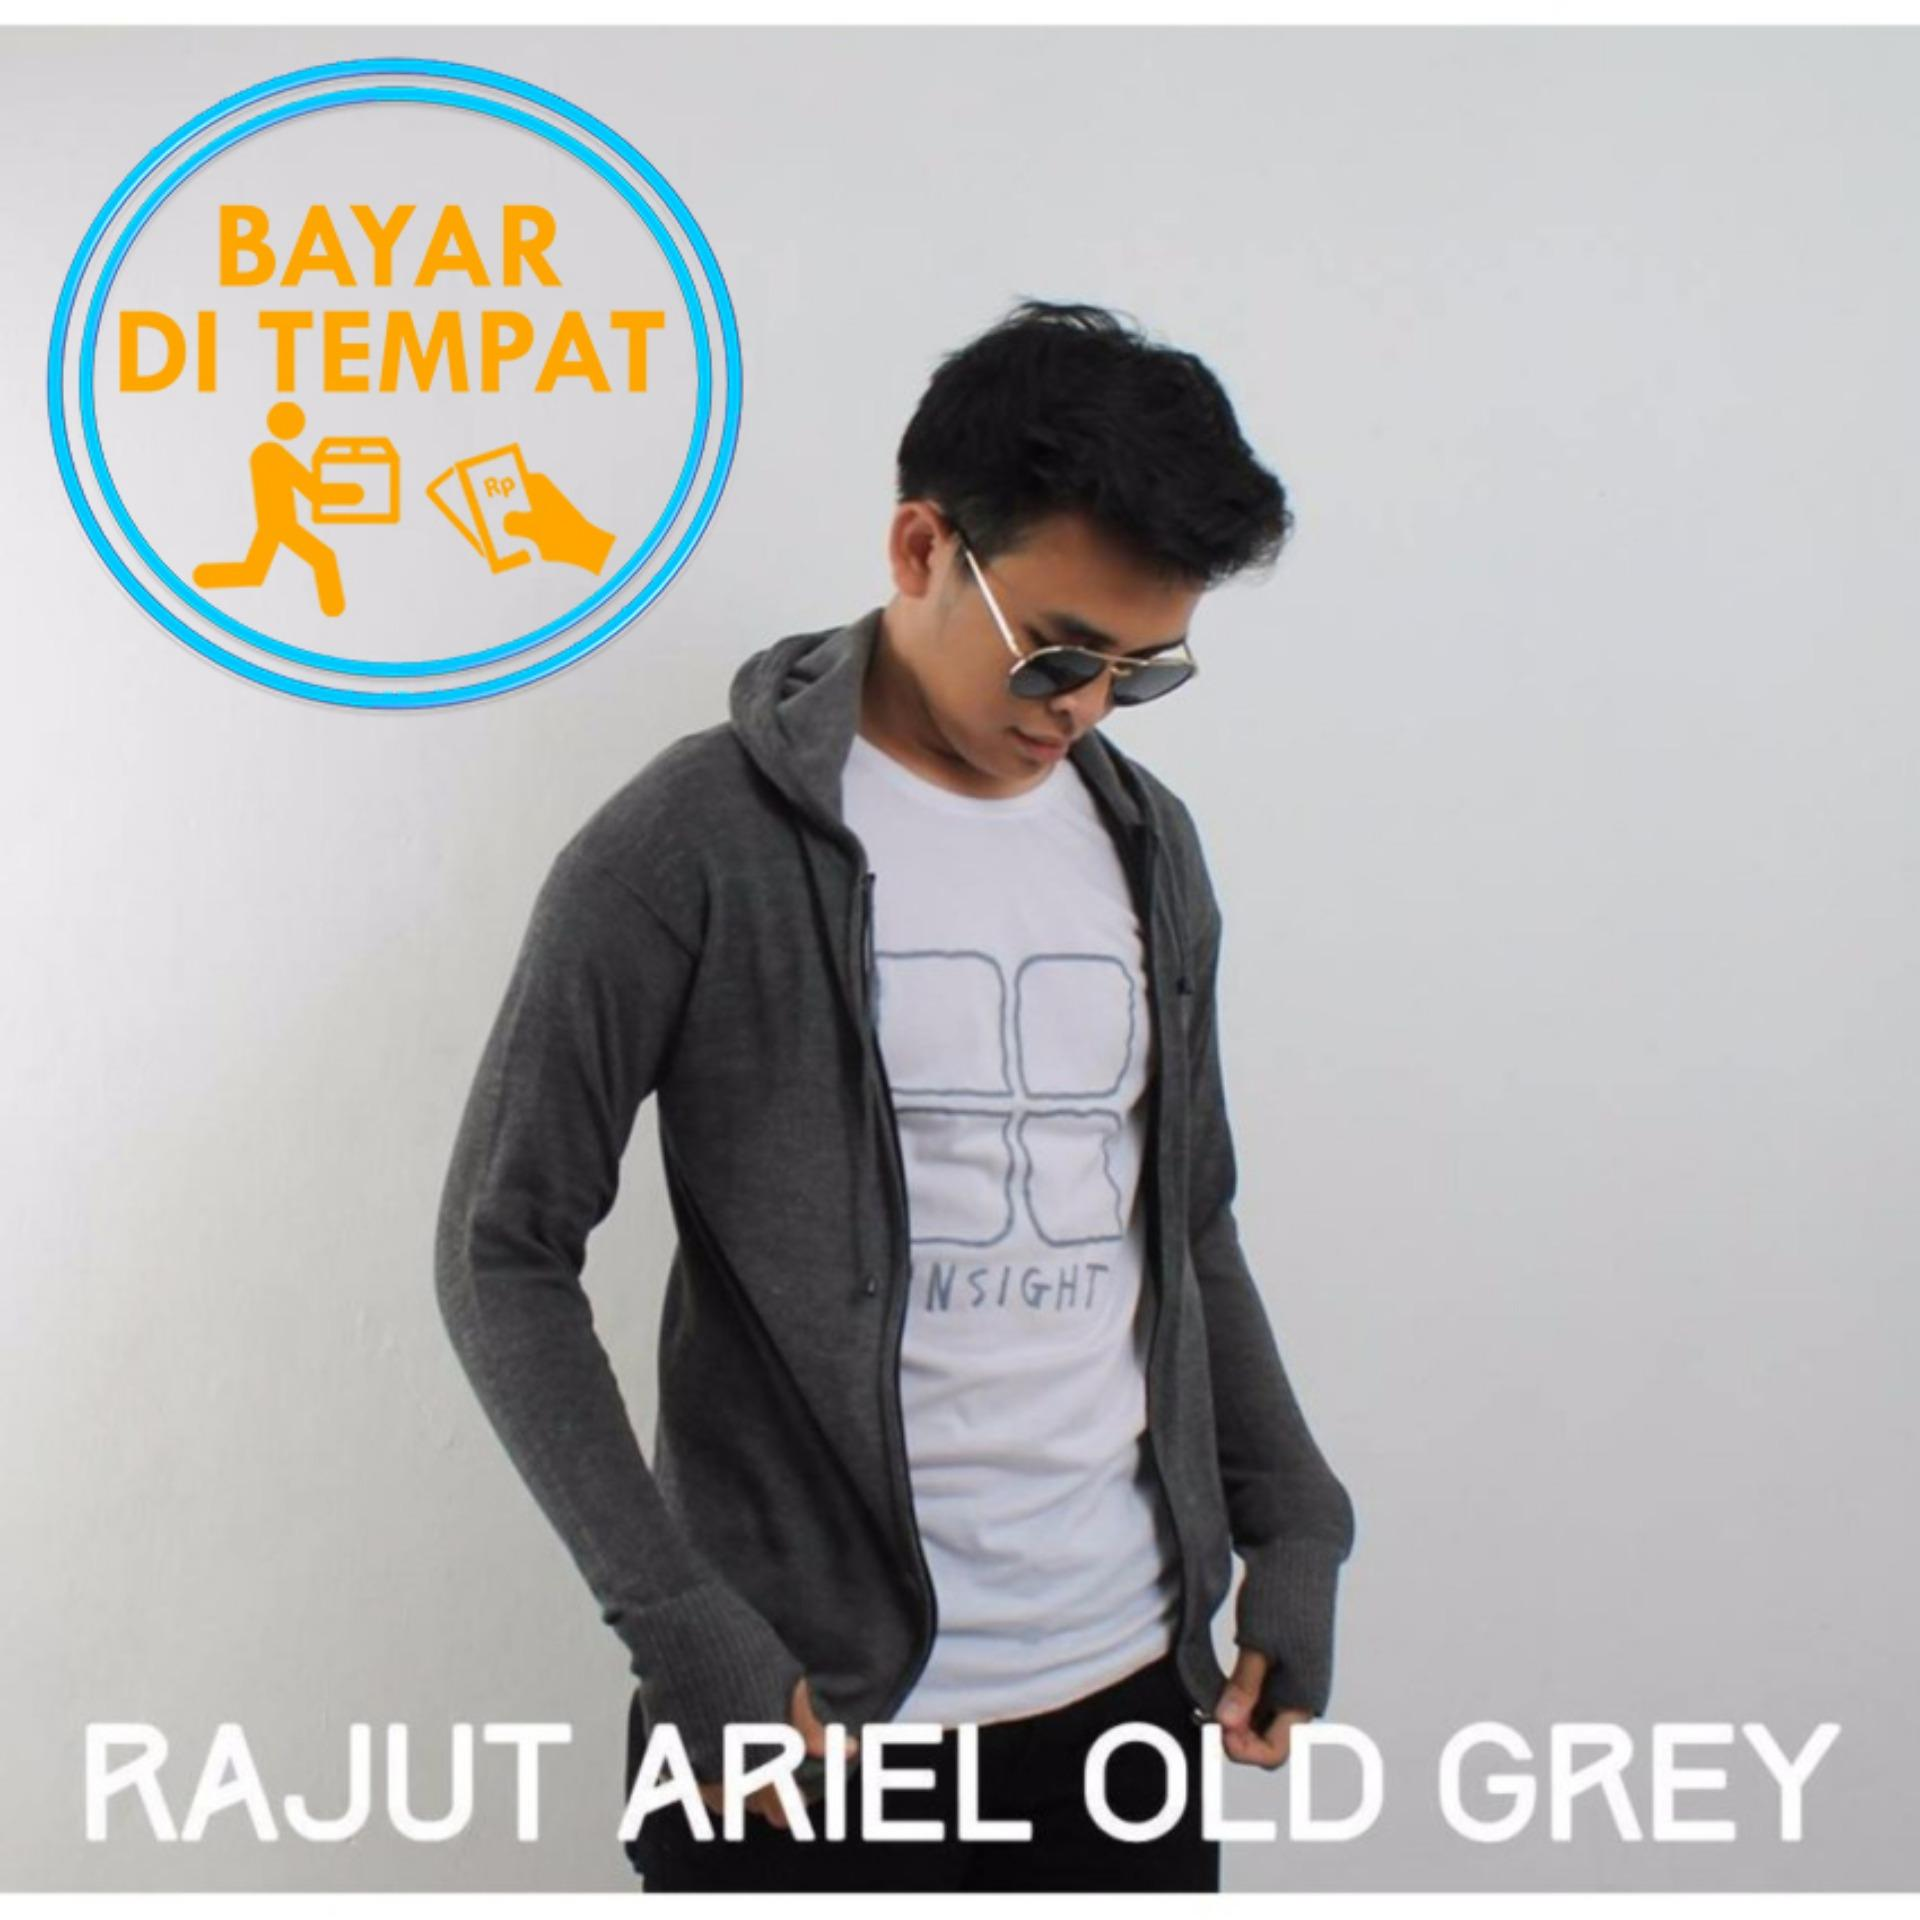 Sweater Rajut Round Hand Finger Dark Grey Jempol Bolong Rajut Collection Diskon 30